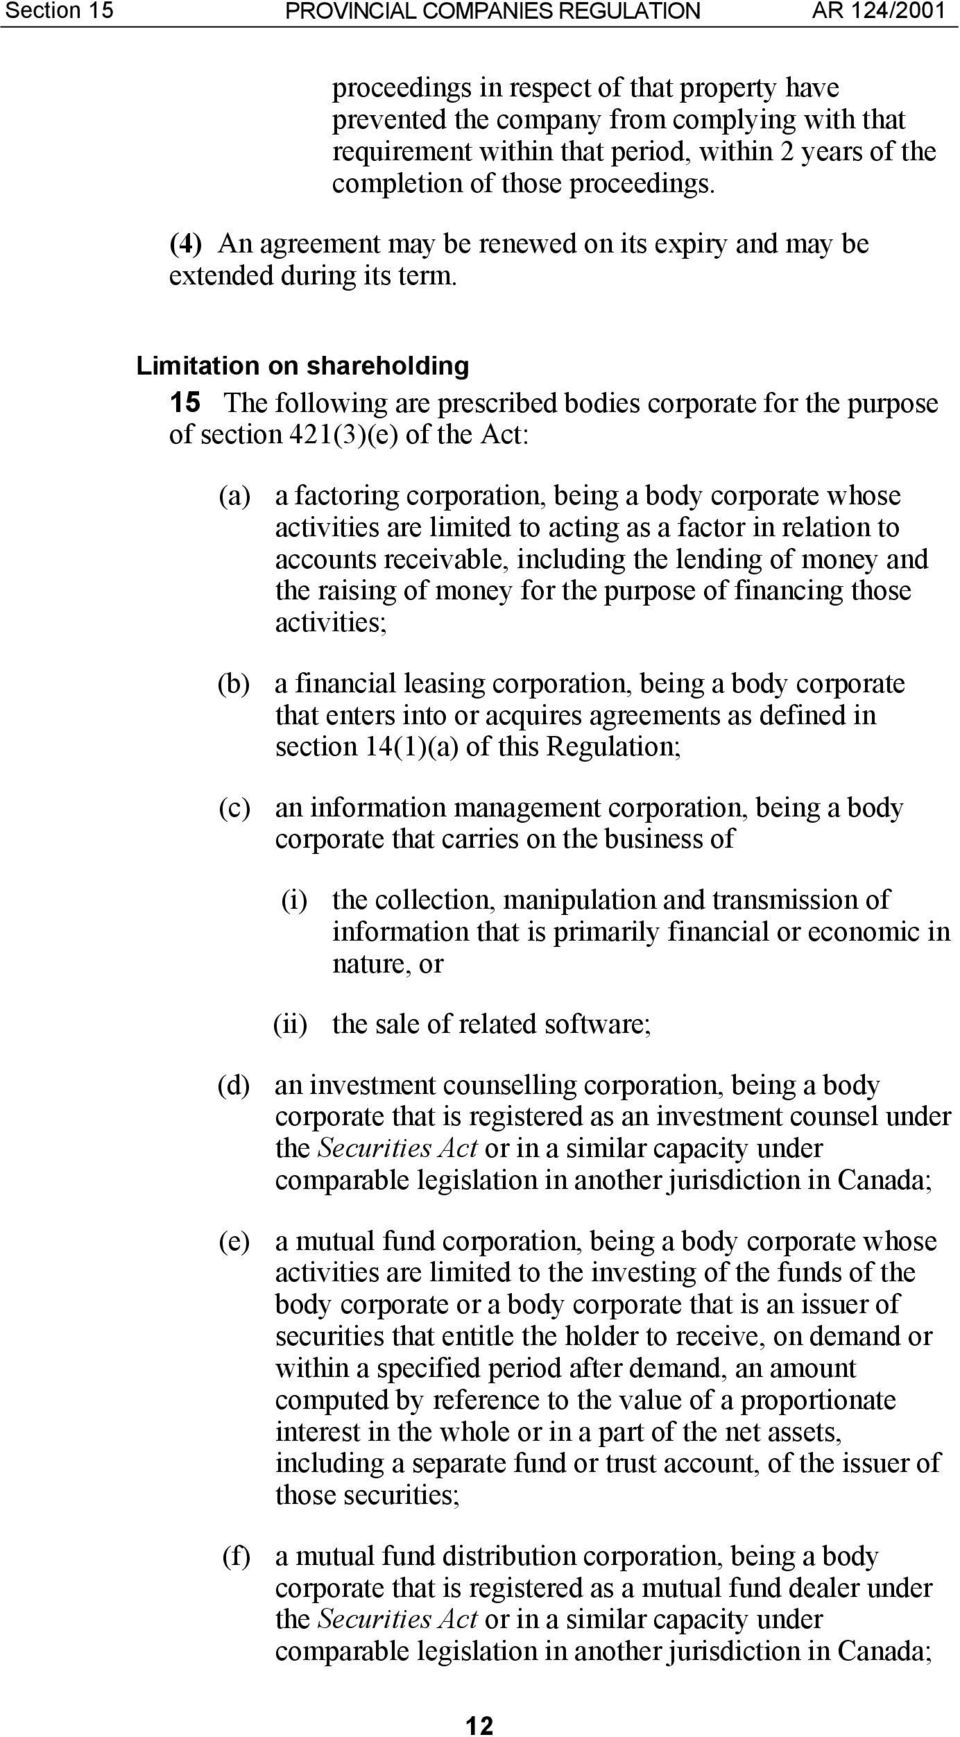 Limitation on shareholding 15 The following are prescribed bodies corporate for the purpose of section 421(3)(e) of the Act: (a) a factoring corporation, being a body corporate whose activities are